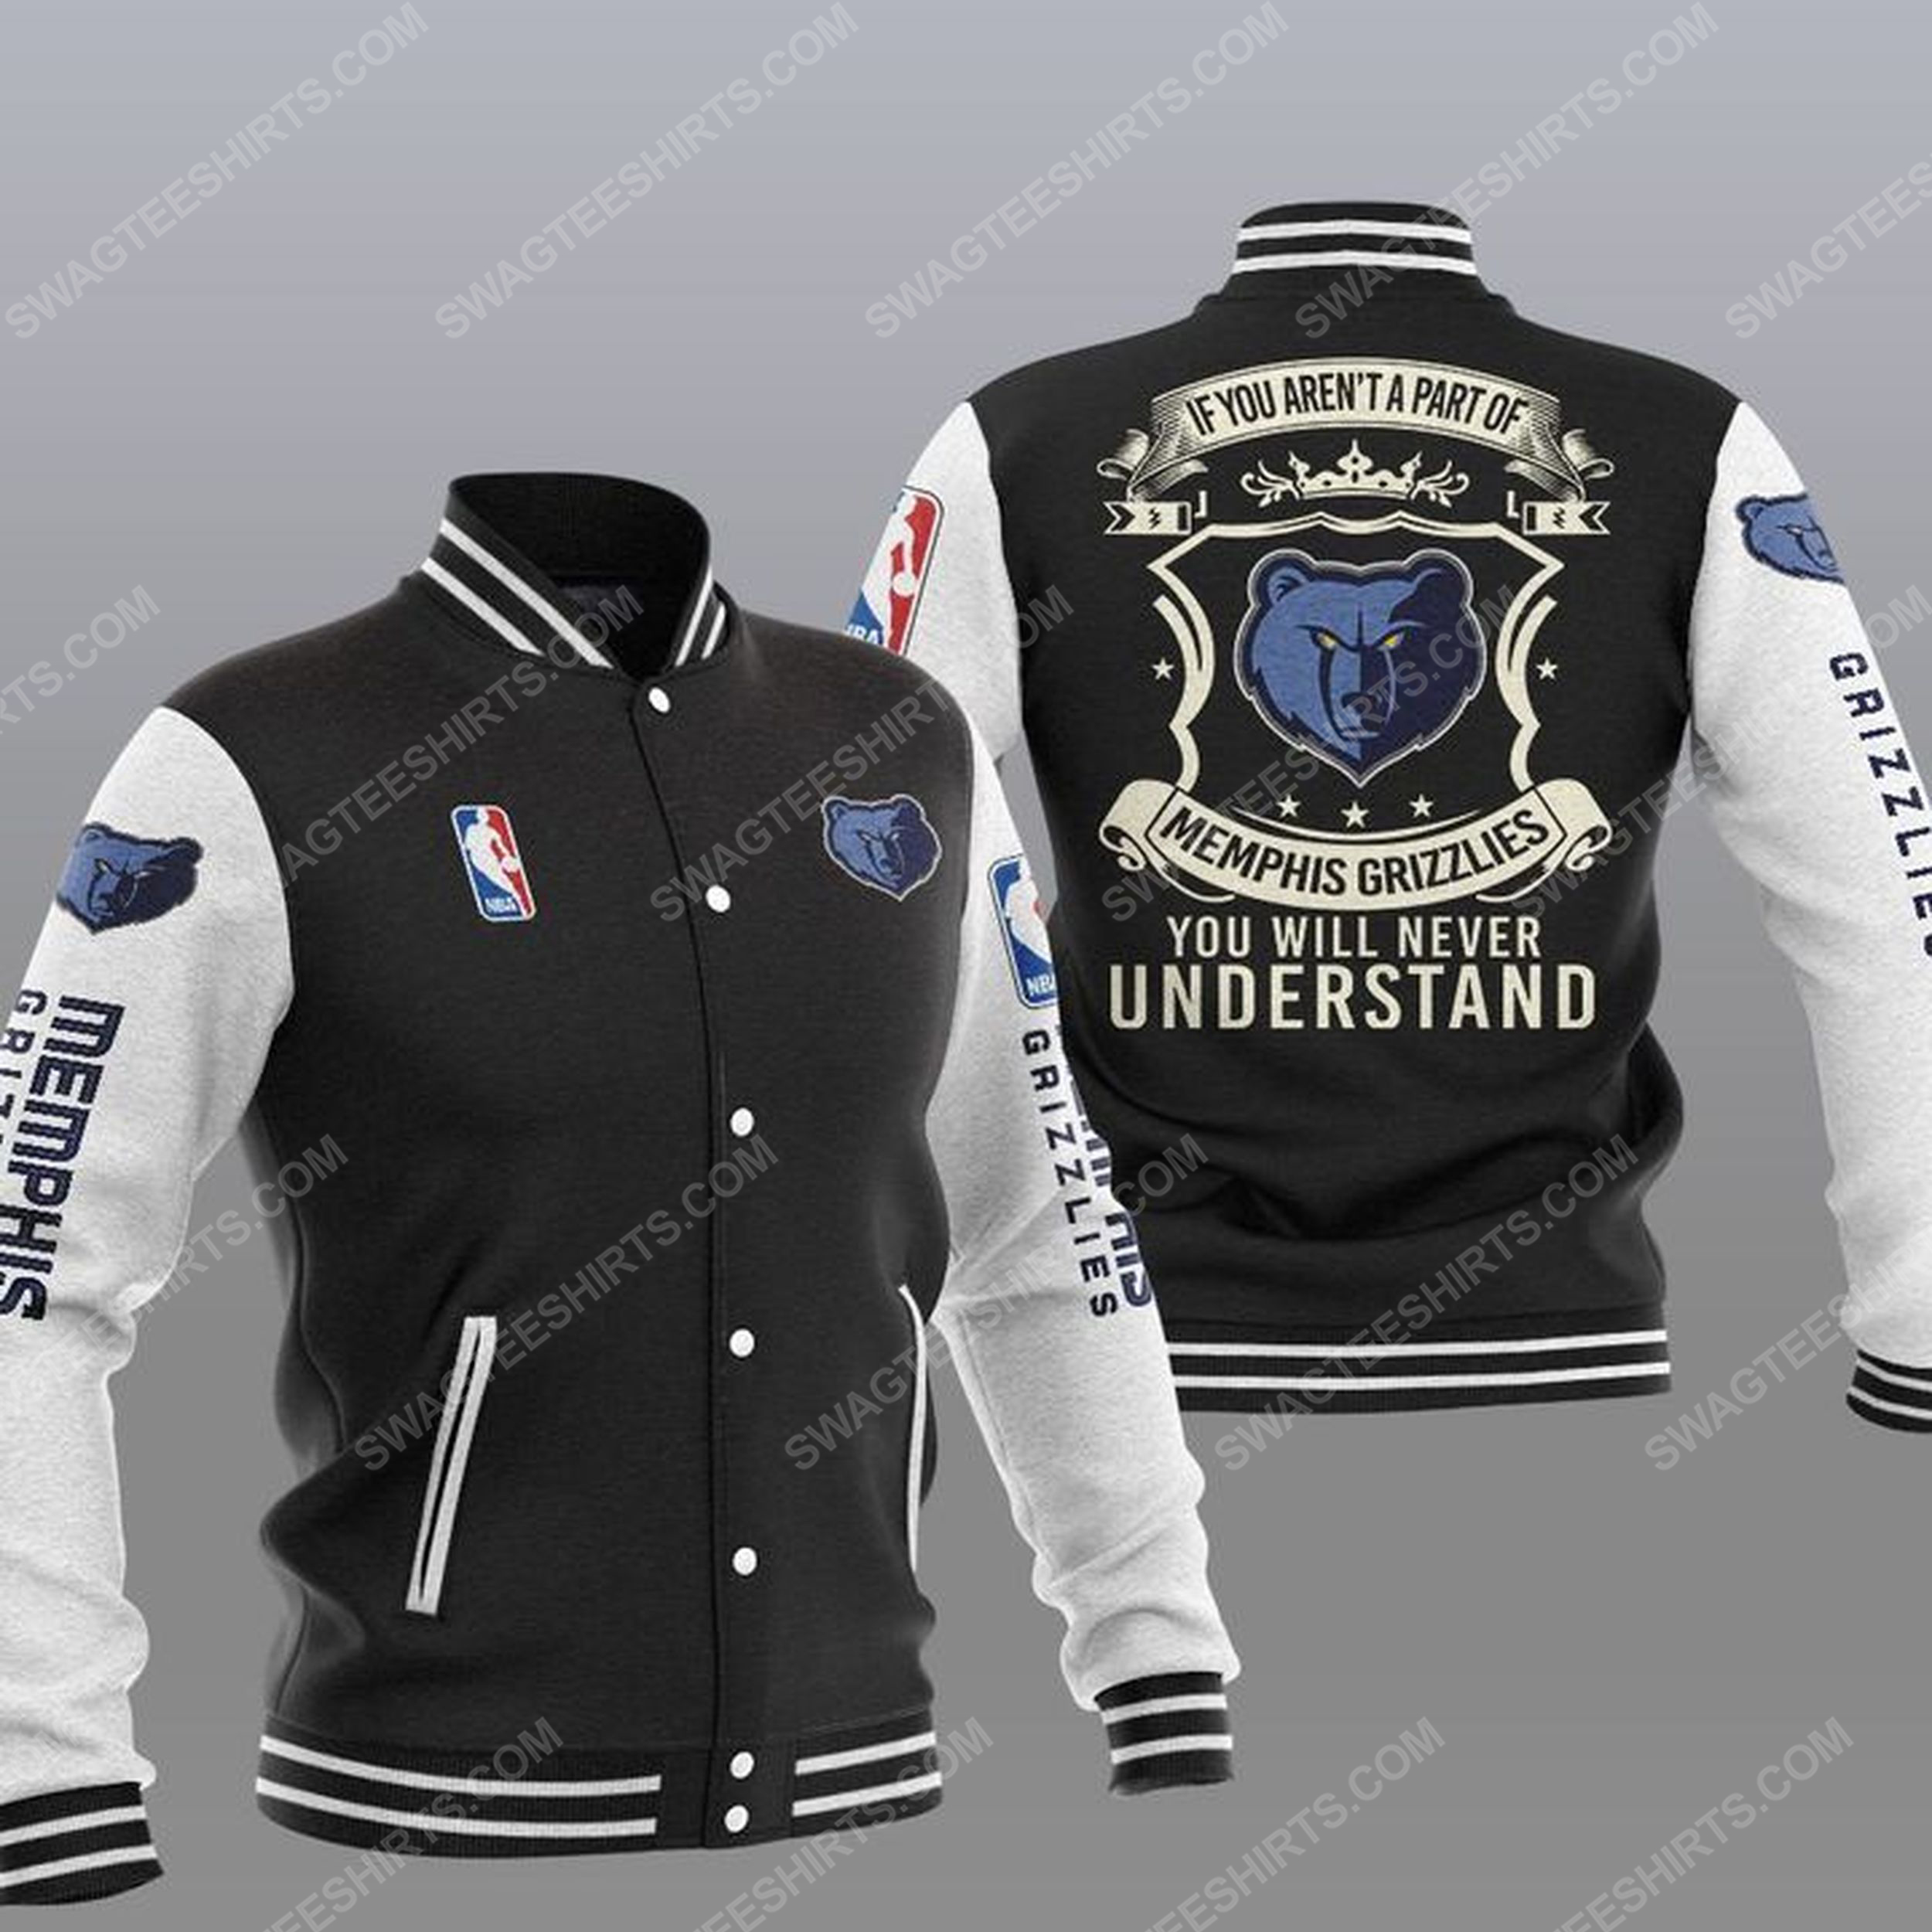 You will never understand memphis grizzlies all over print baseball jacket - black 1